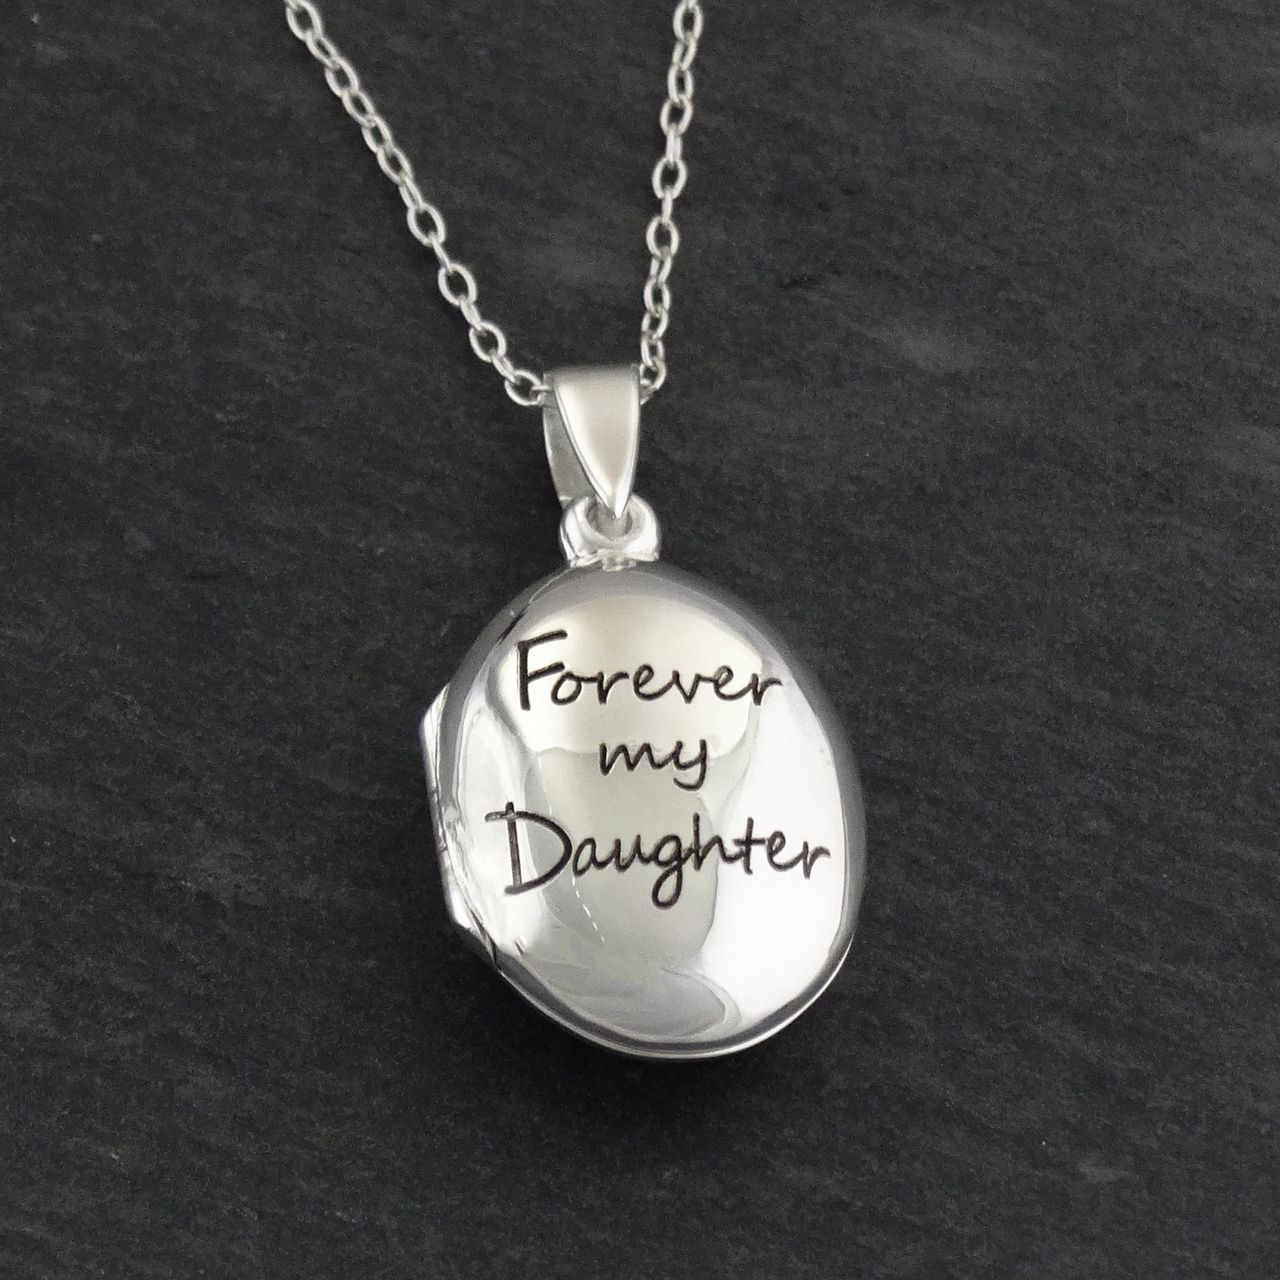 Engraved forever my daughter locket necklace sterling silver engraved forever my daughter locket necklace sterling silver mozeypictures Images